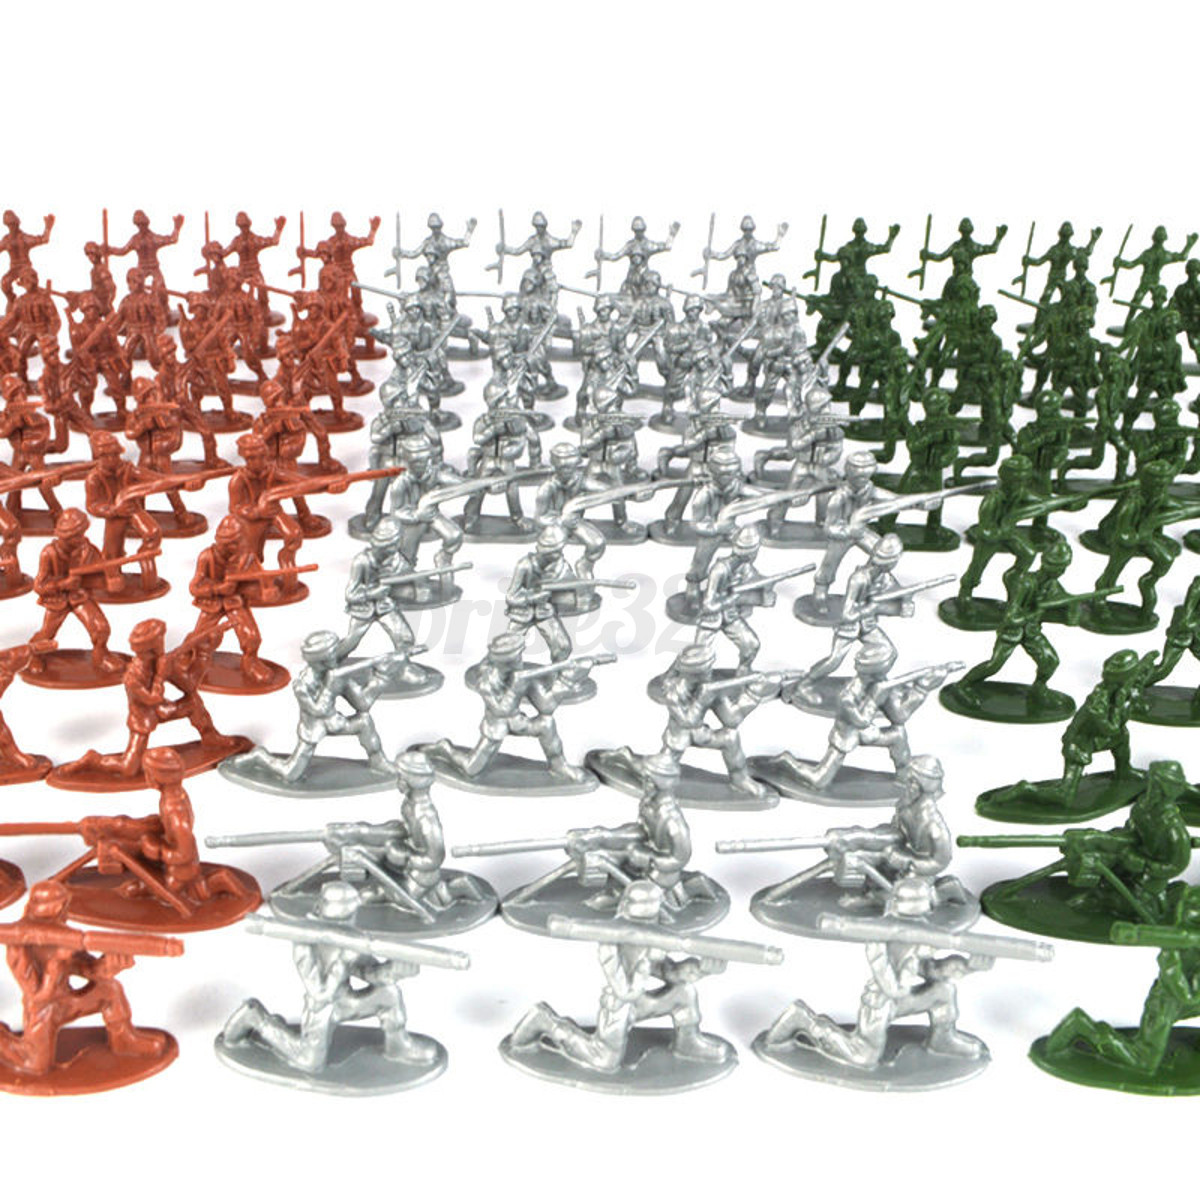 Army Toys Color : Pcs military plastic toy soldiers army men tan figures